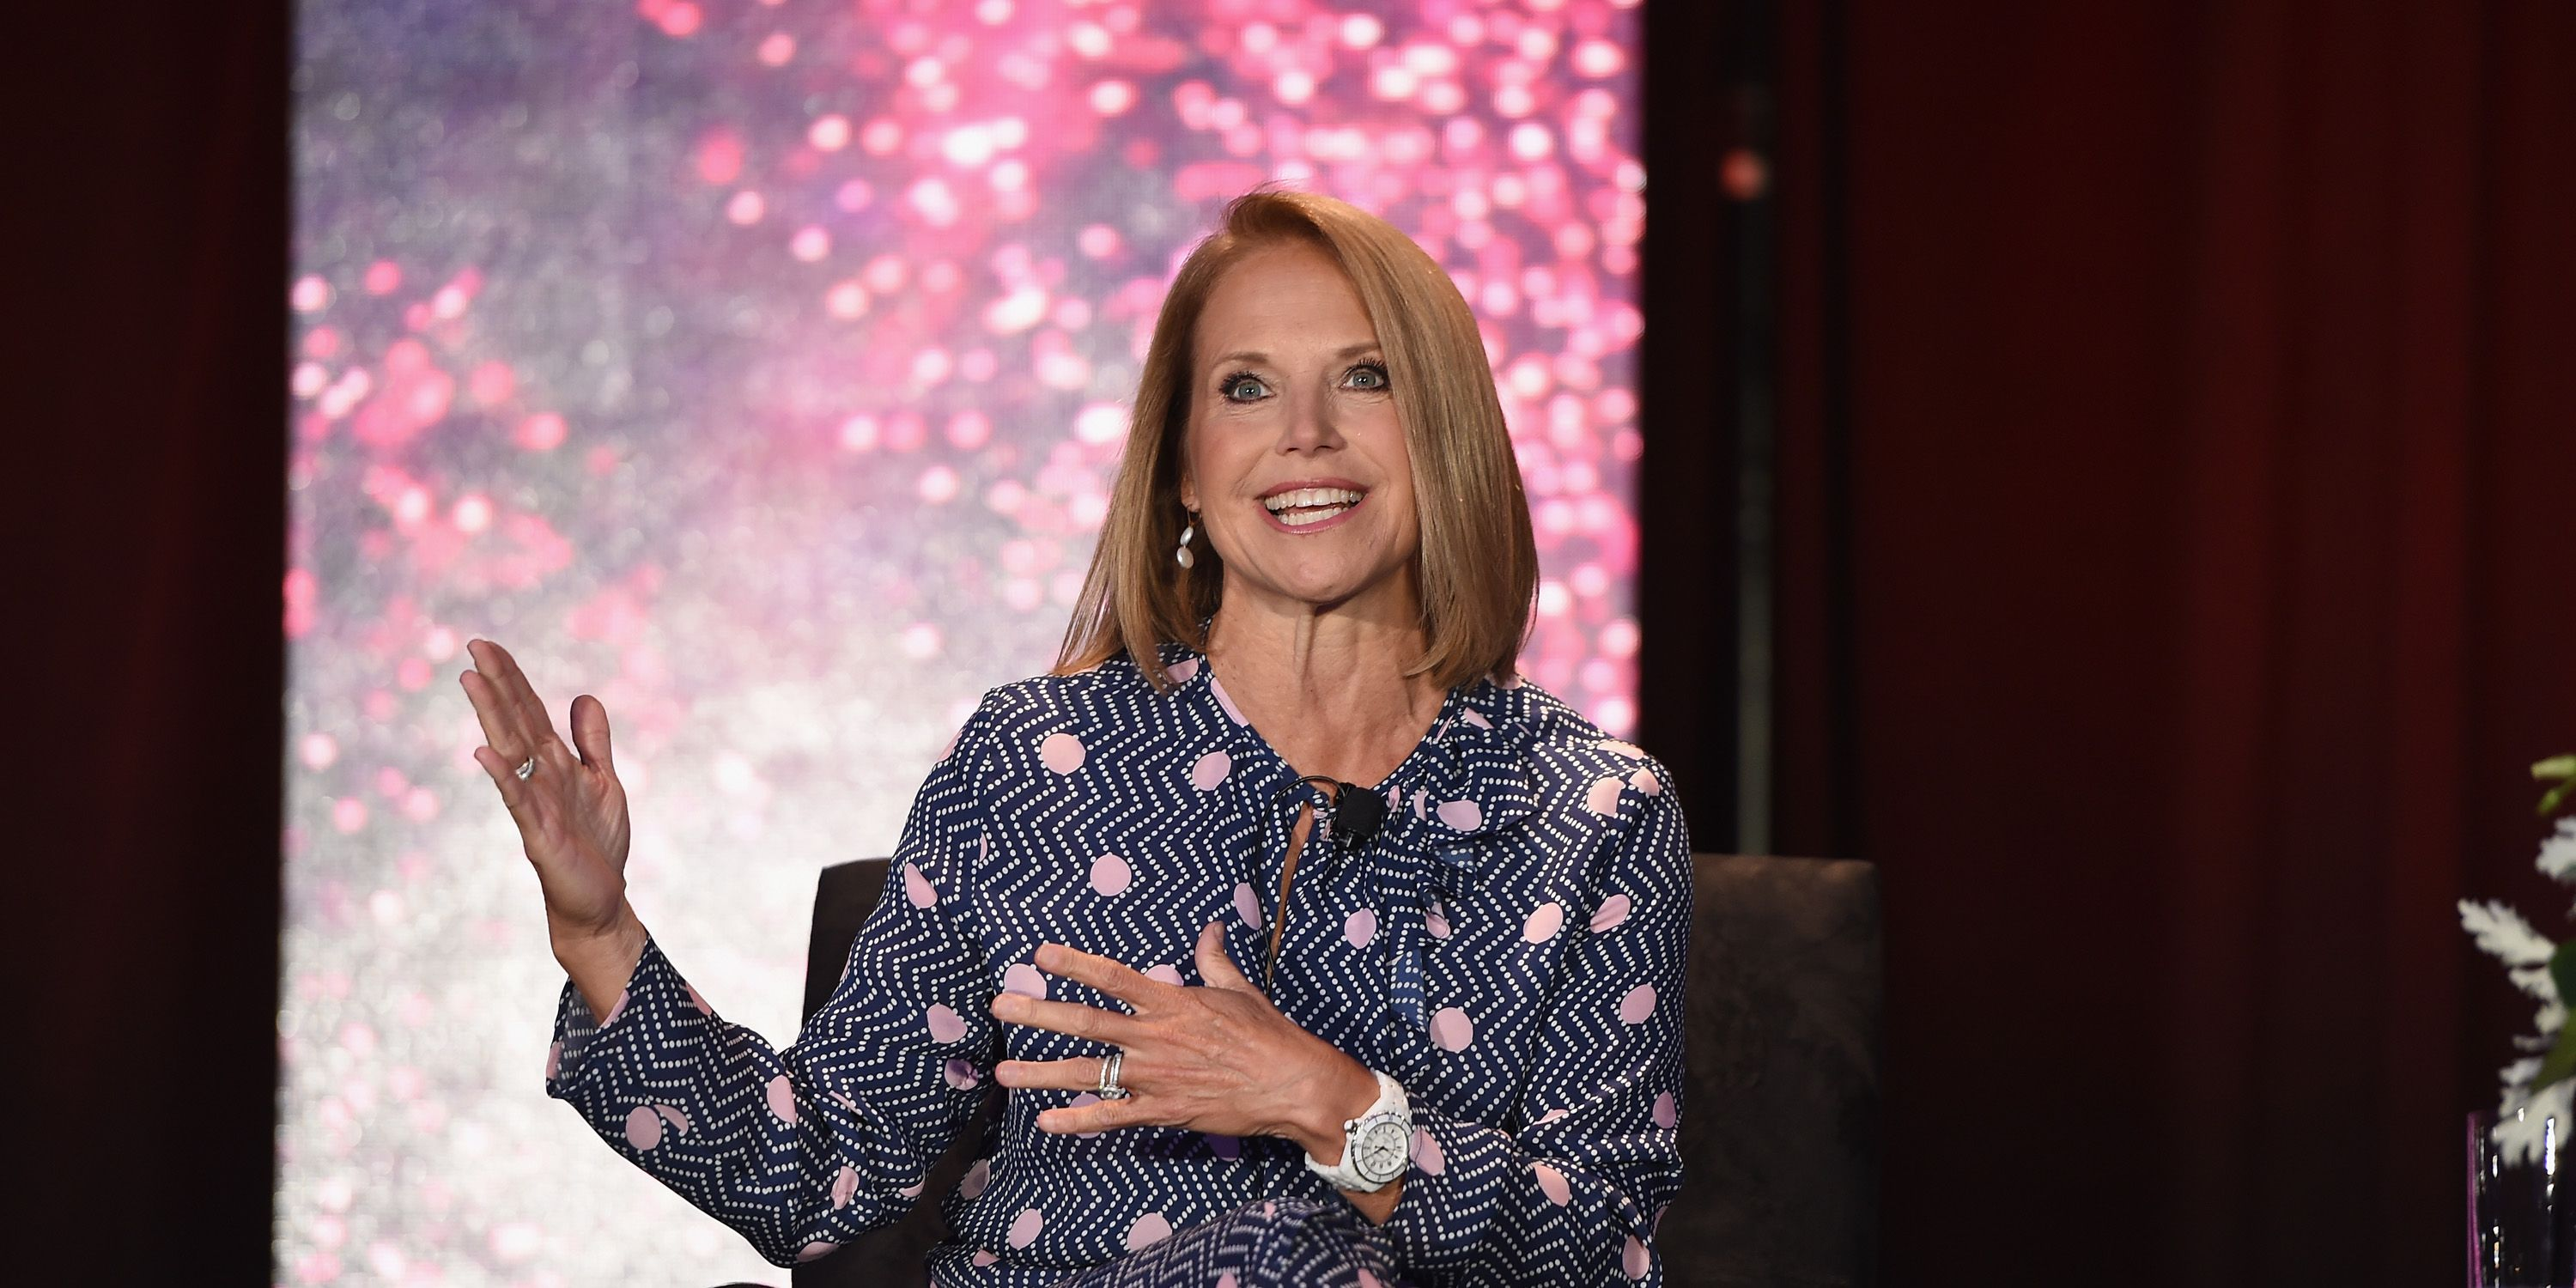 Katie Couric speaking at the WICT Leadership Conference - Day 1